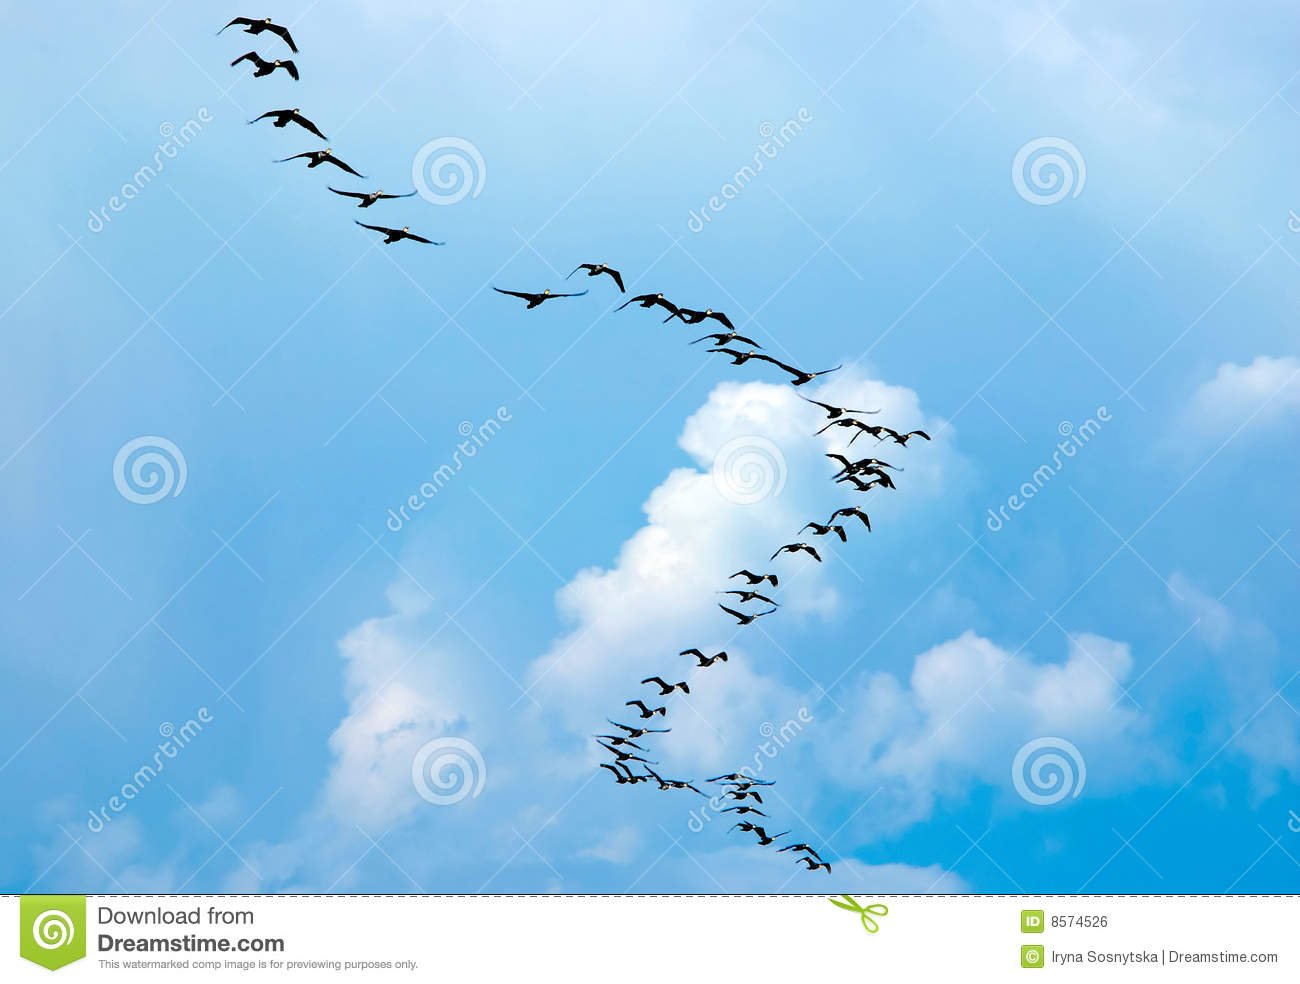 Flying Birds Free Stock Photos Download 3 416 Free Stock: Silhouette Of Flying Birds Royalty Free Stock Image